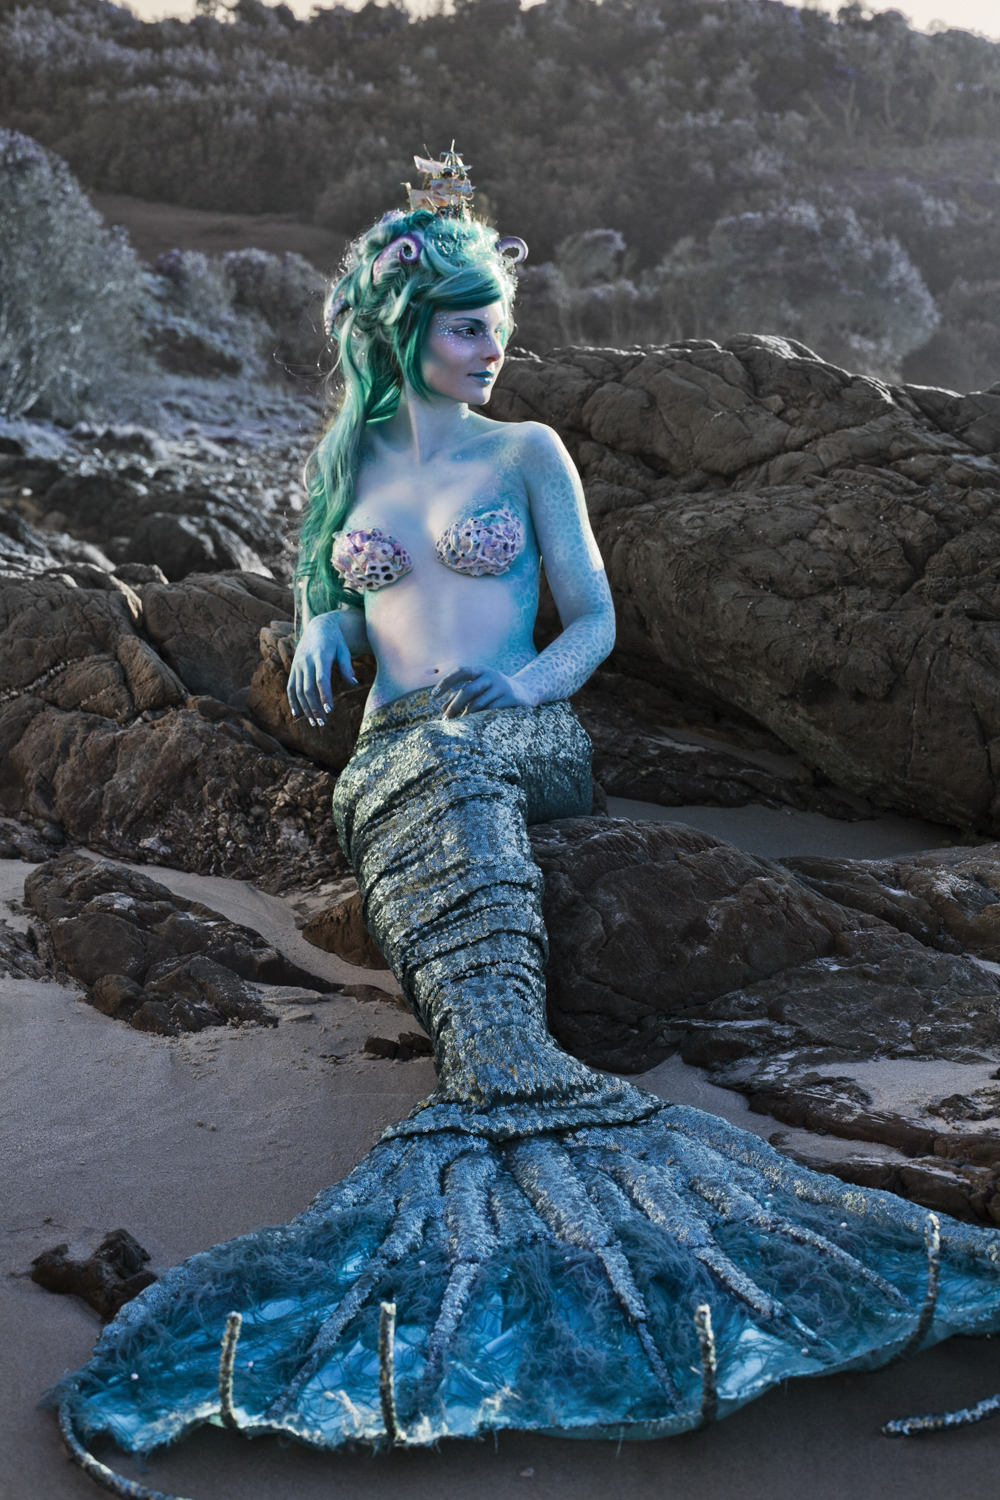 mermaid costume and makeup art bodyart in Byron bay